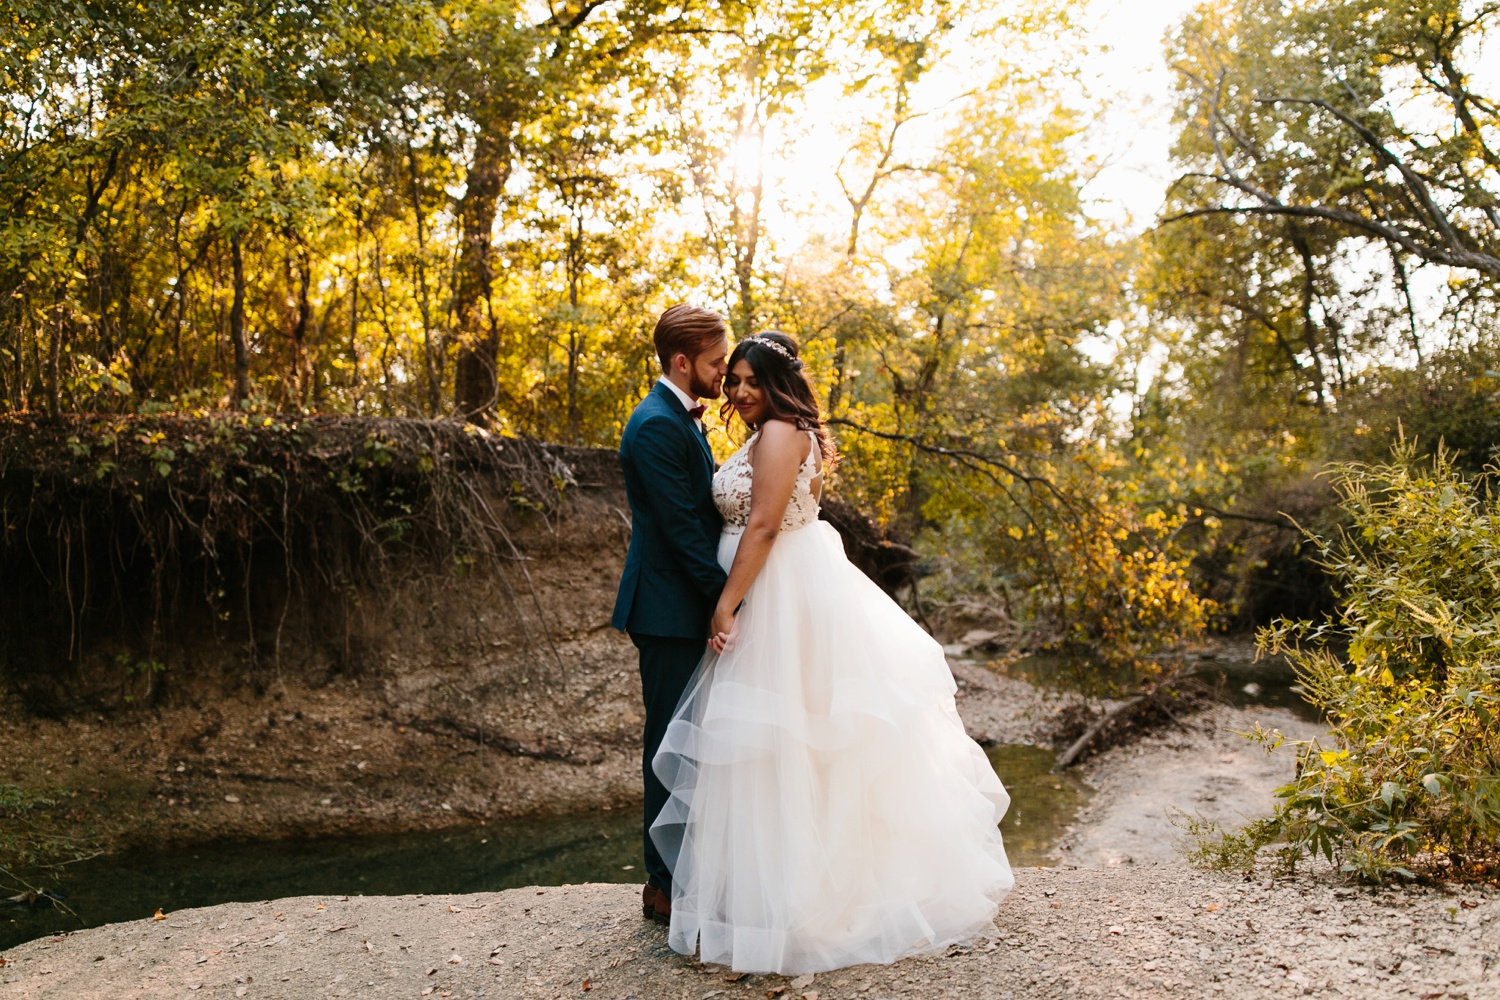 Grant + Lysette | a vibrant, deep burgundy and navy, and mixed metals wedding at Hidden Pines Chapel by North Texas Wedding Photographer Rachel Meagan Photography 203